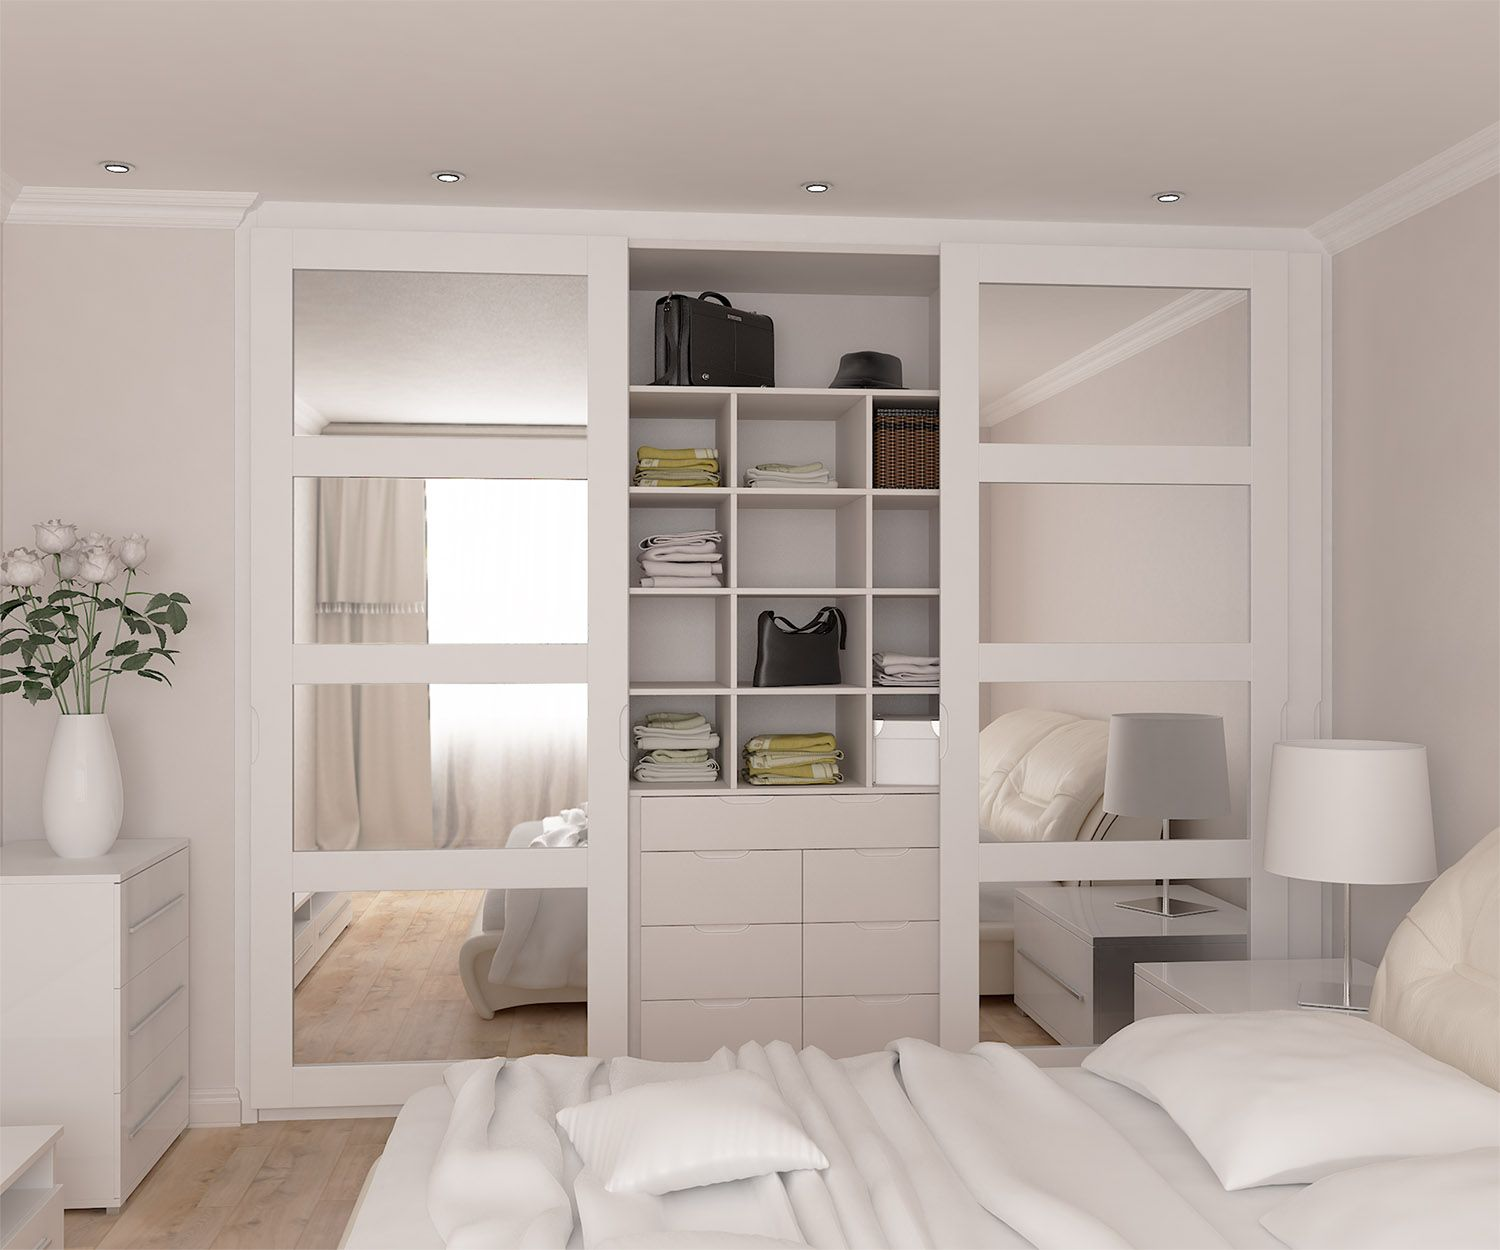 Create A New Look For Your Room With These Closet Door Ideas And Design Ikea Modern Vstroennyjshkafku Apartment Bedroom Decor Bedroom Interior Closet Bedroom